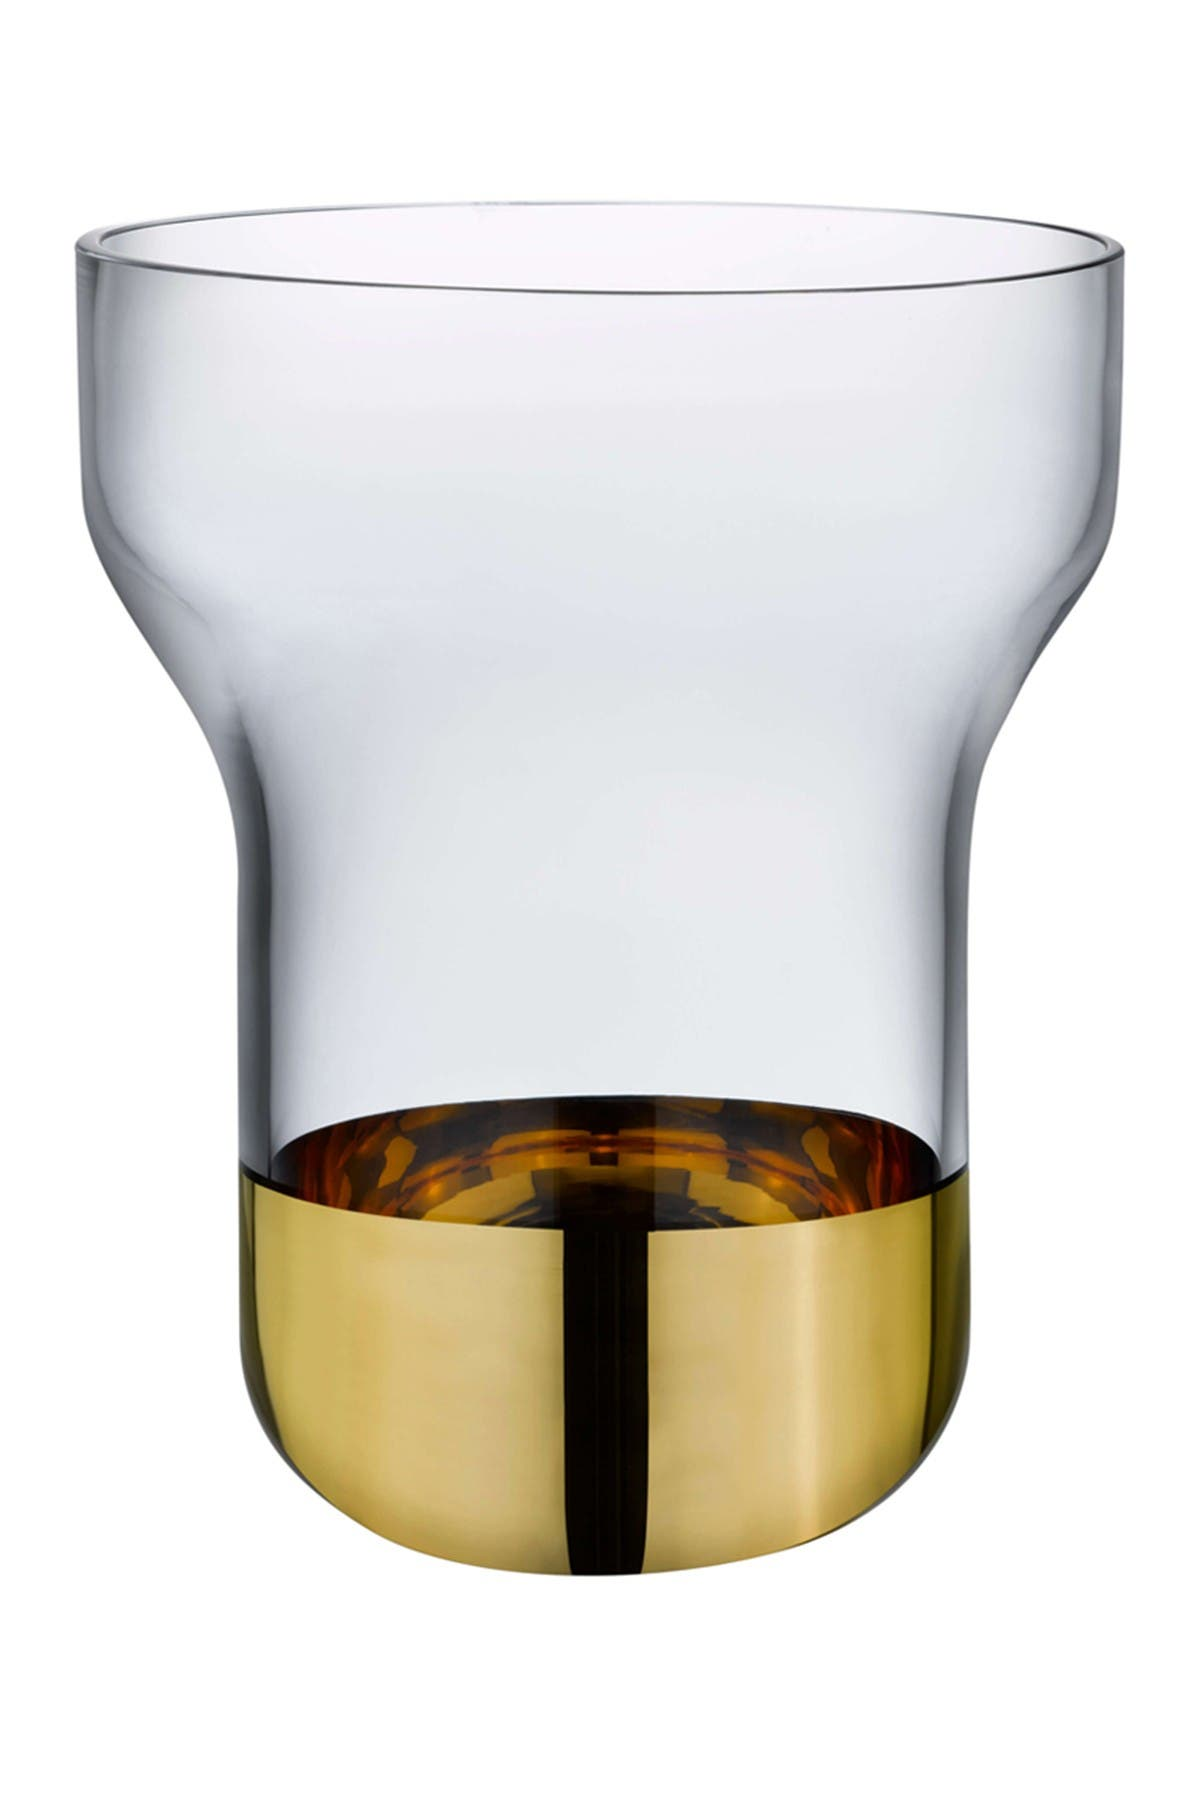 Image of Nude Glass Contour Vase - Wide with Clear Top and Golden Base